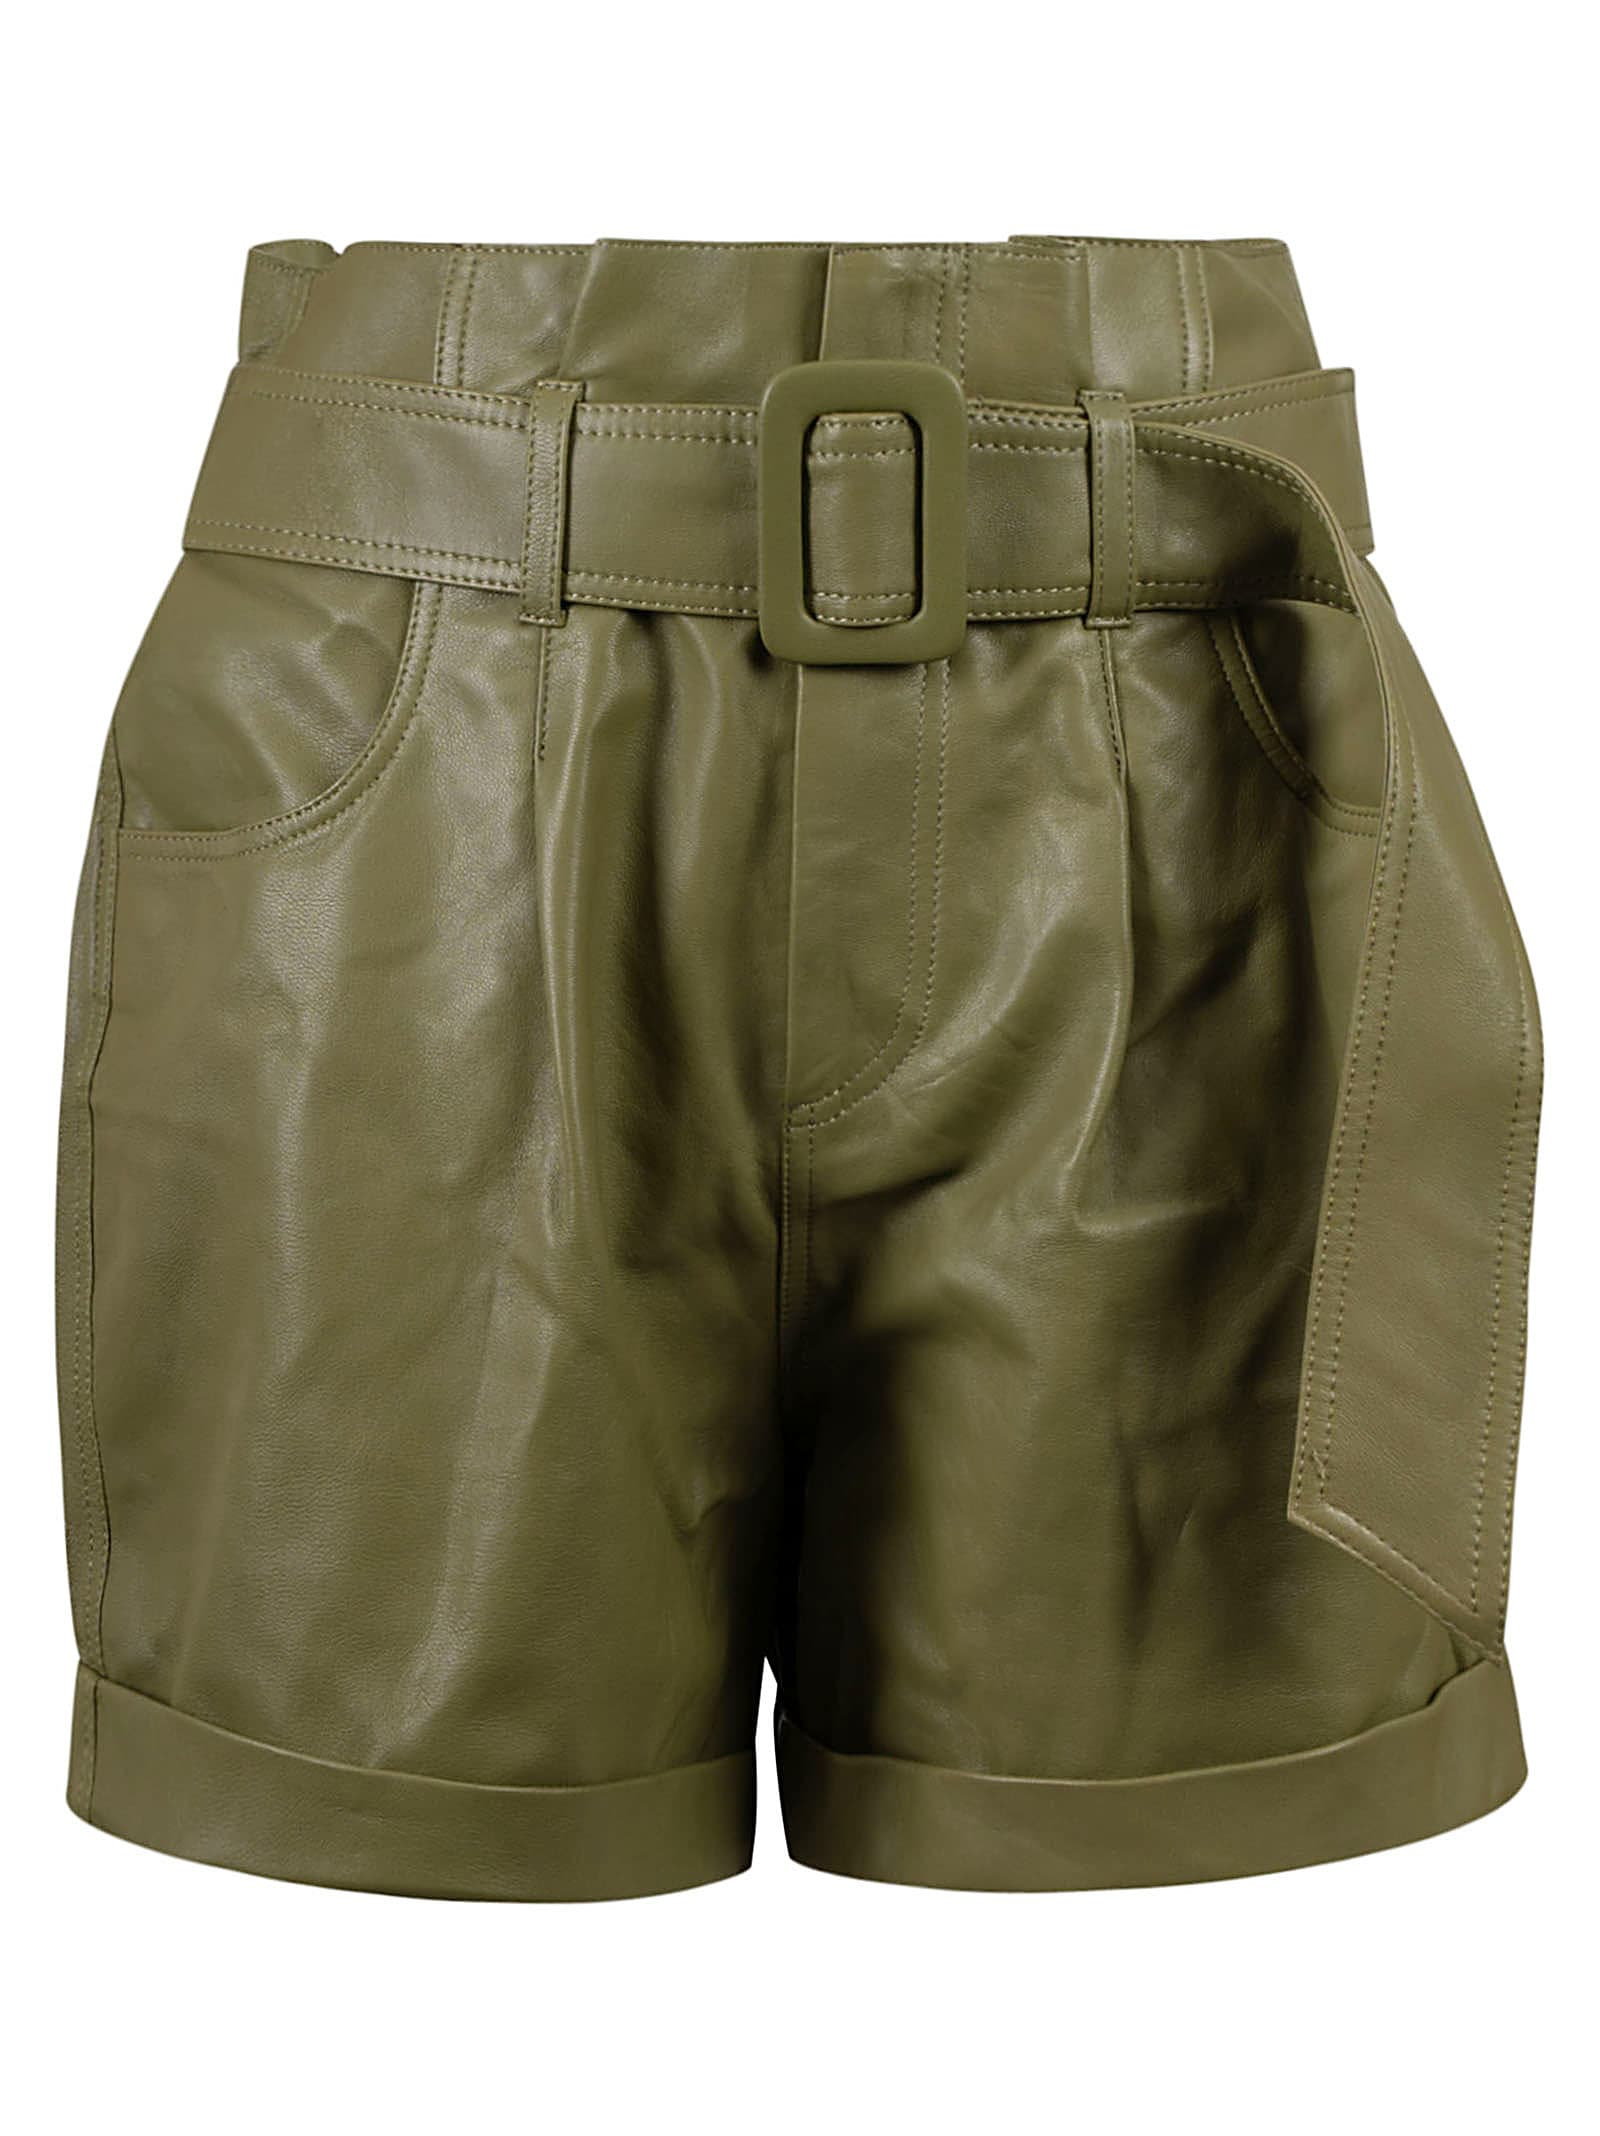 Federica Tosi Leathers BELTED SHORTS